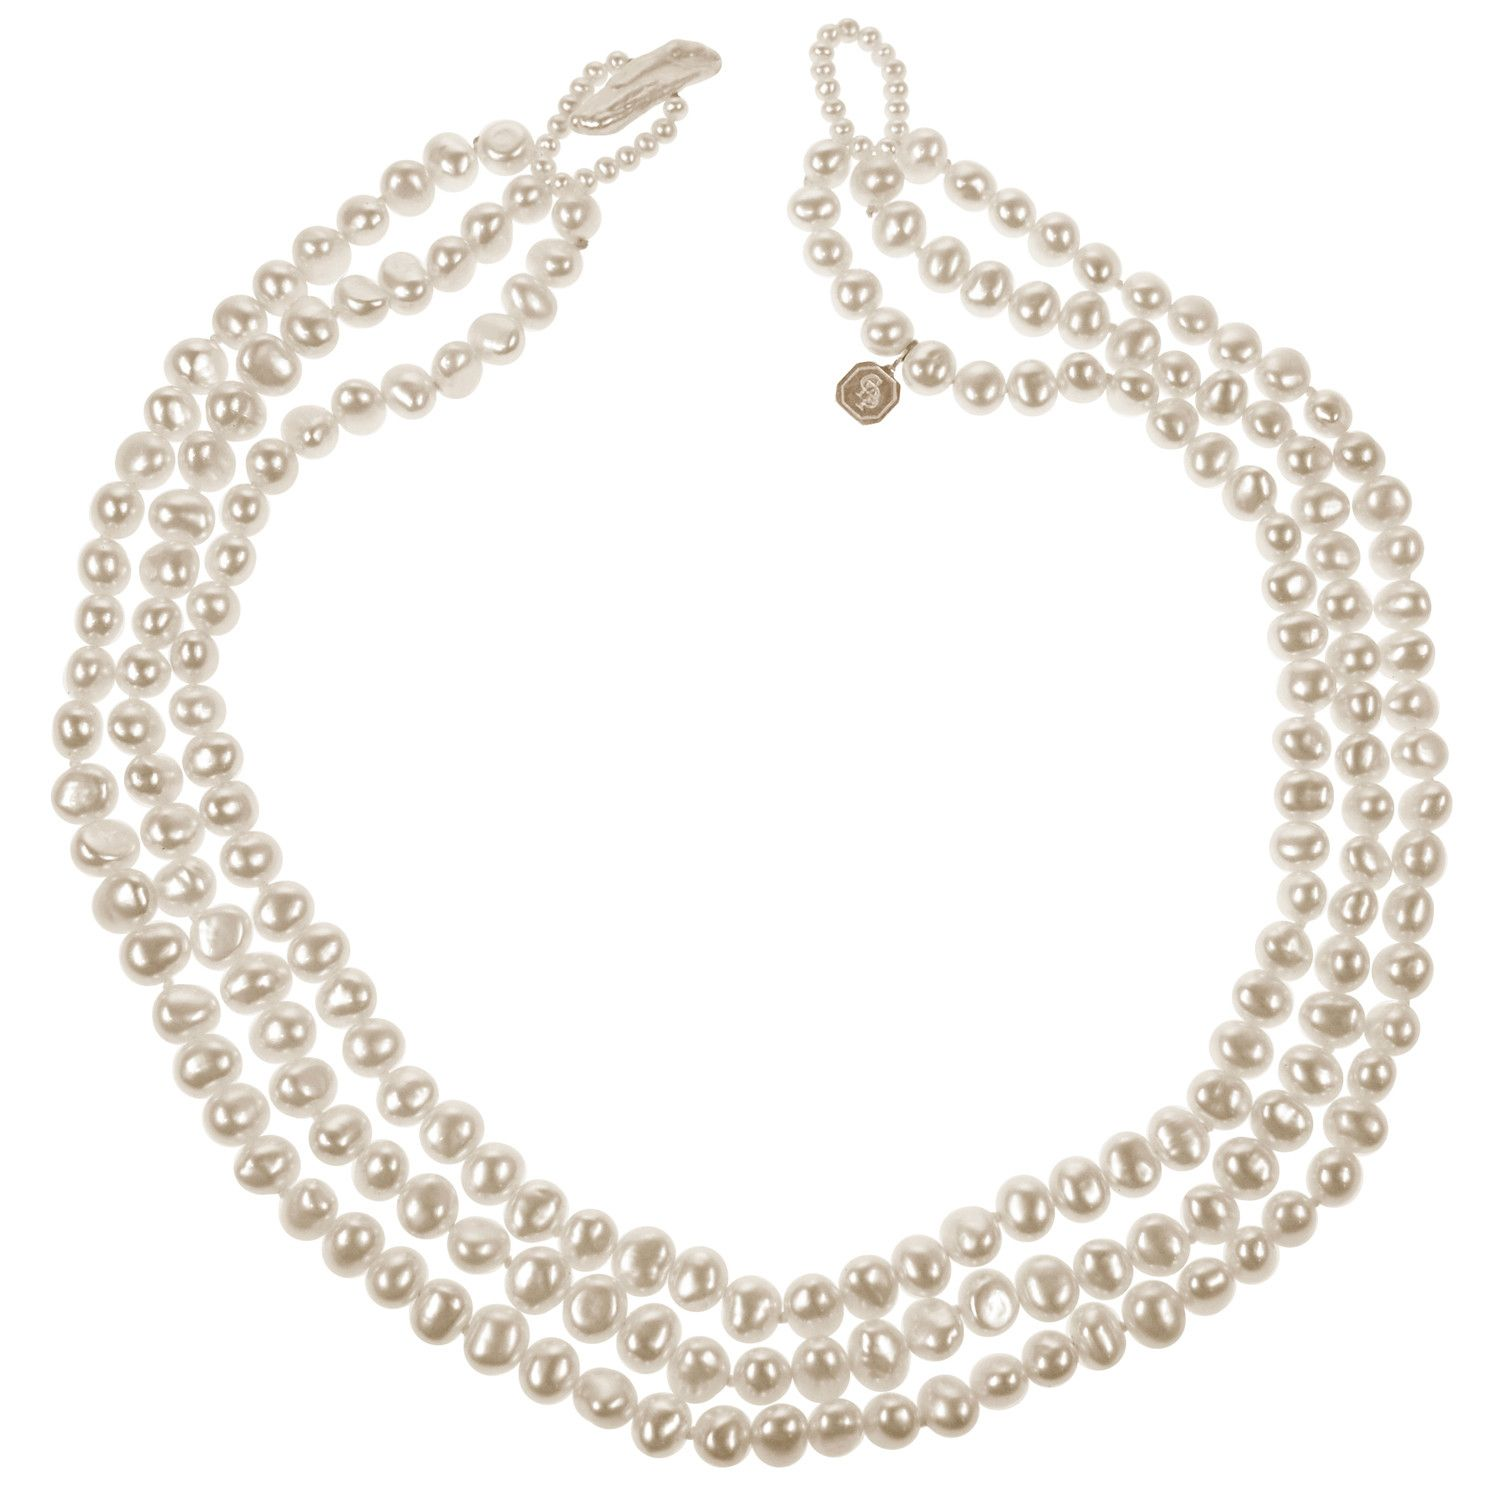 9eb5ad20b Classic 3 Strand Biwa Pearl Necklace in White from Coleman Douglas Pearls